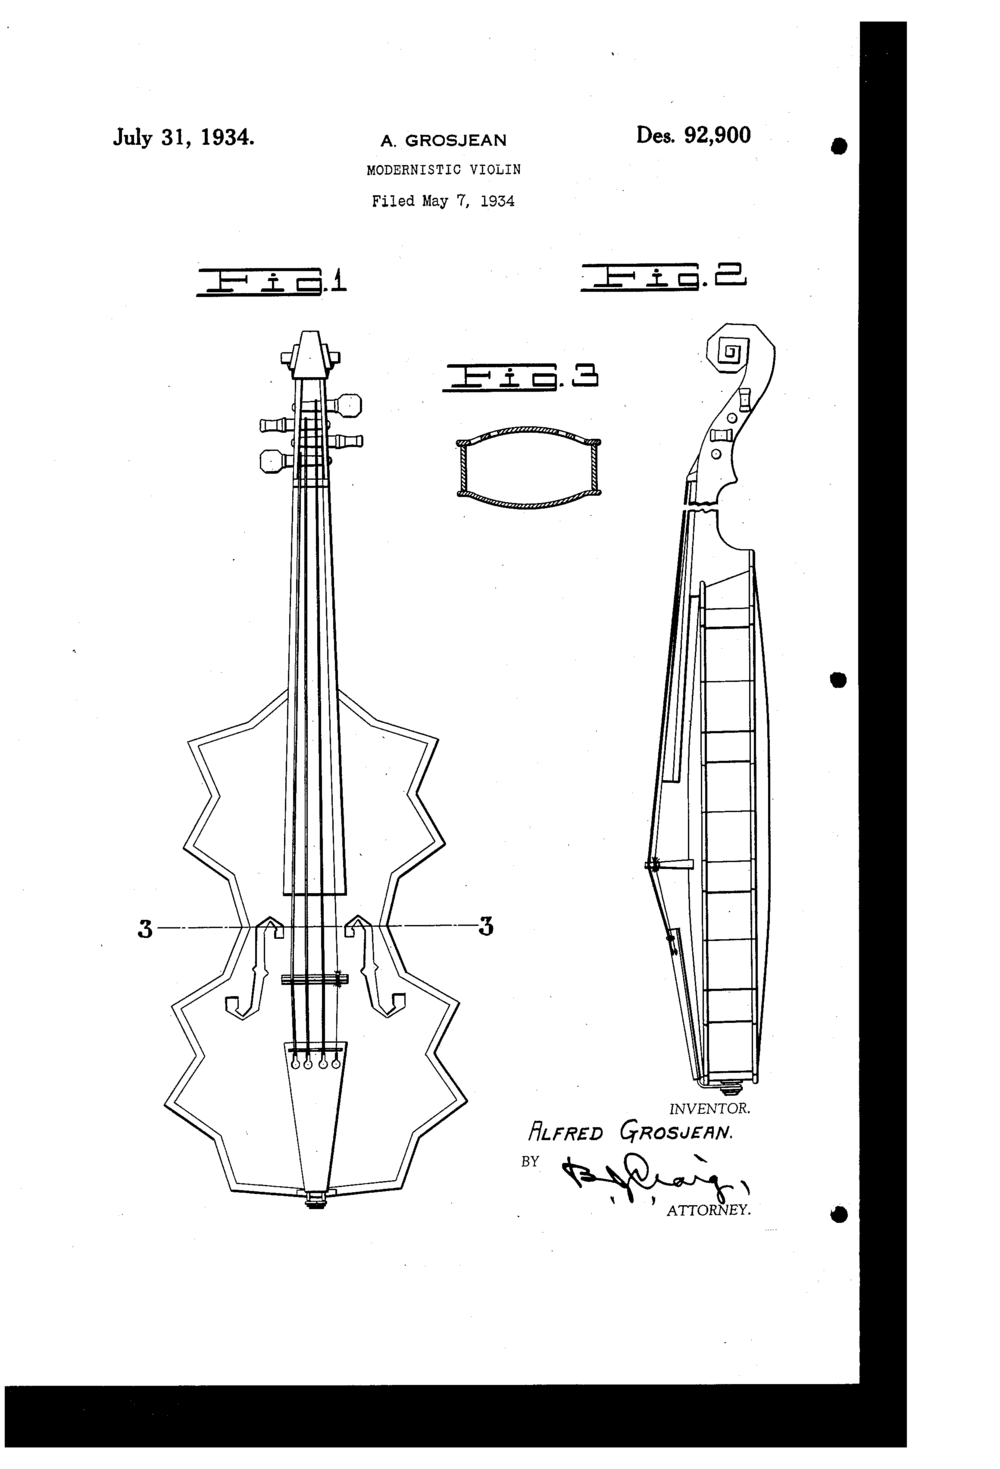 Original 1934 Patent filed by Alfred Grosjean